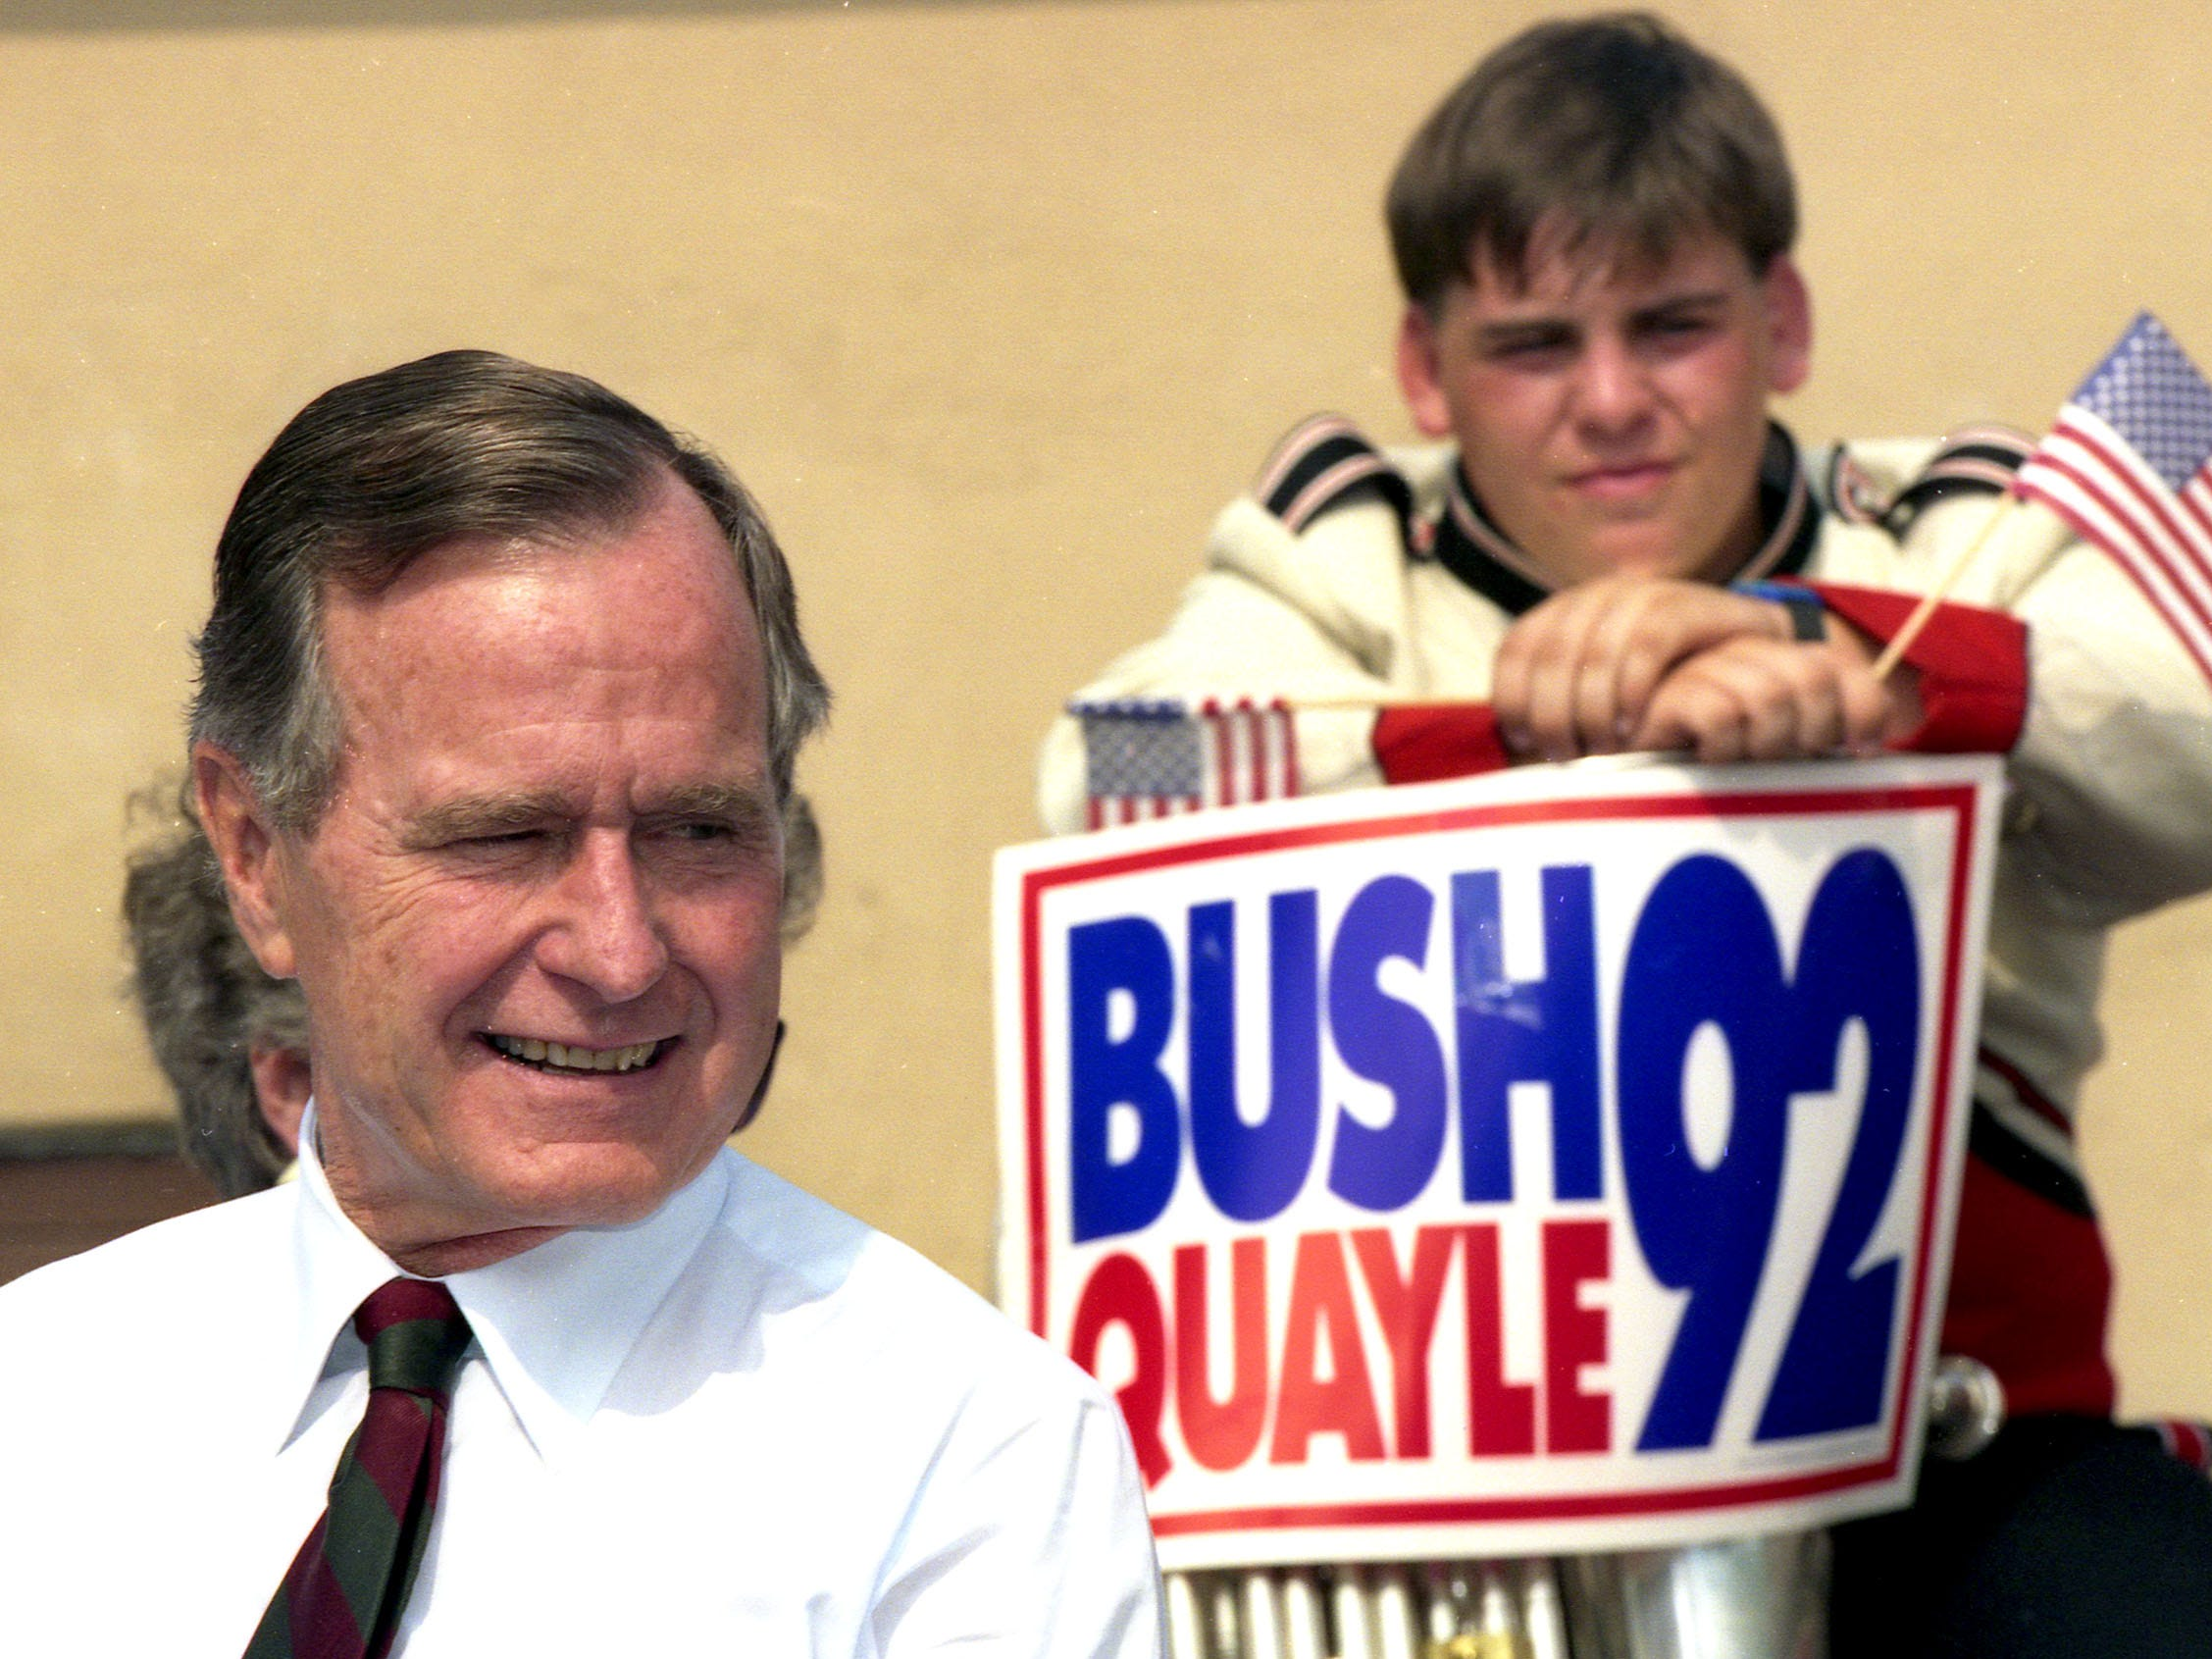 President George Bush is shown during an appearance at the V.F.W. Post 2179 in Middletown, NJ, on September 9, 1992.